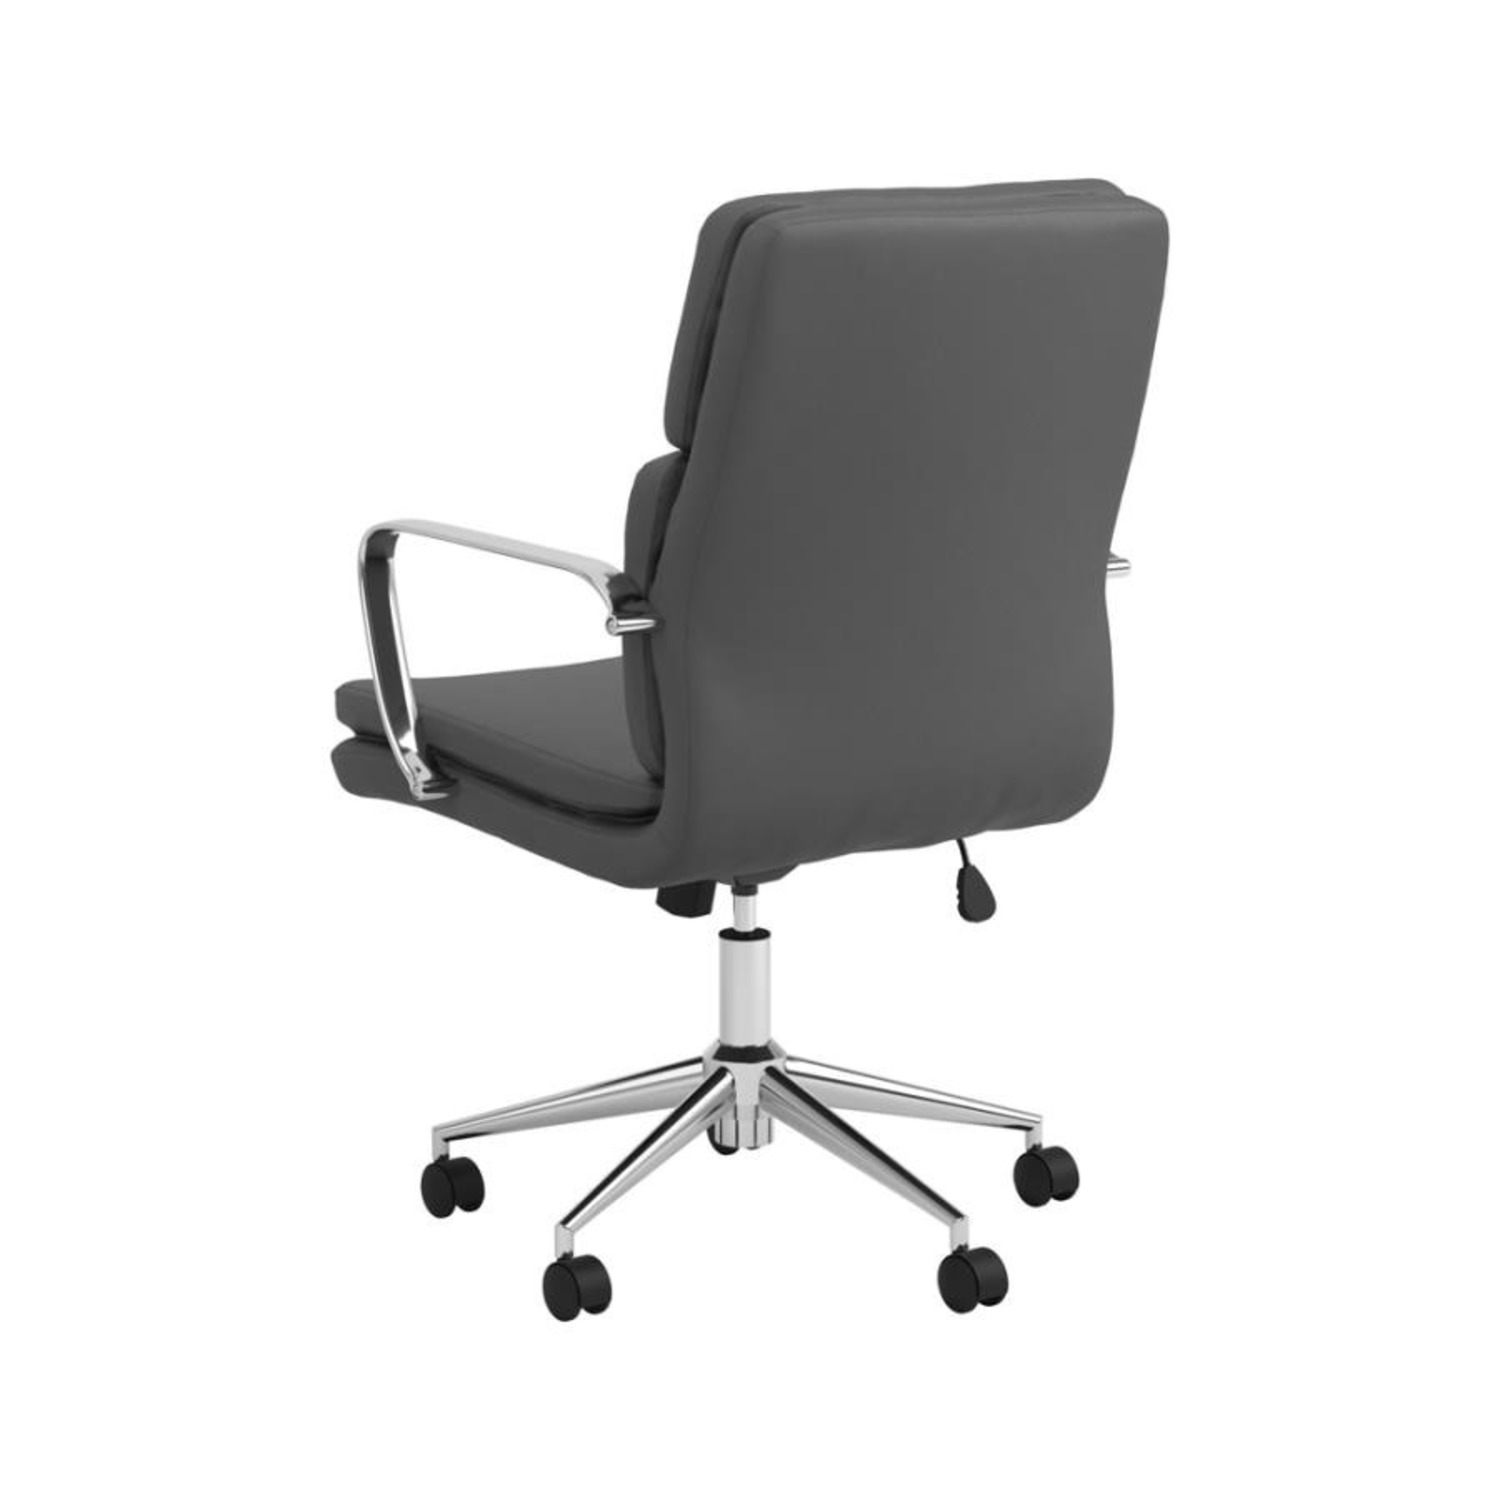 Office Chair In Grey Leatherette & Chrome Finish - image-3